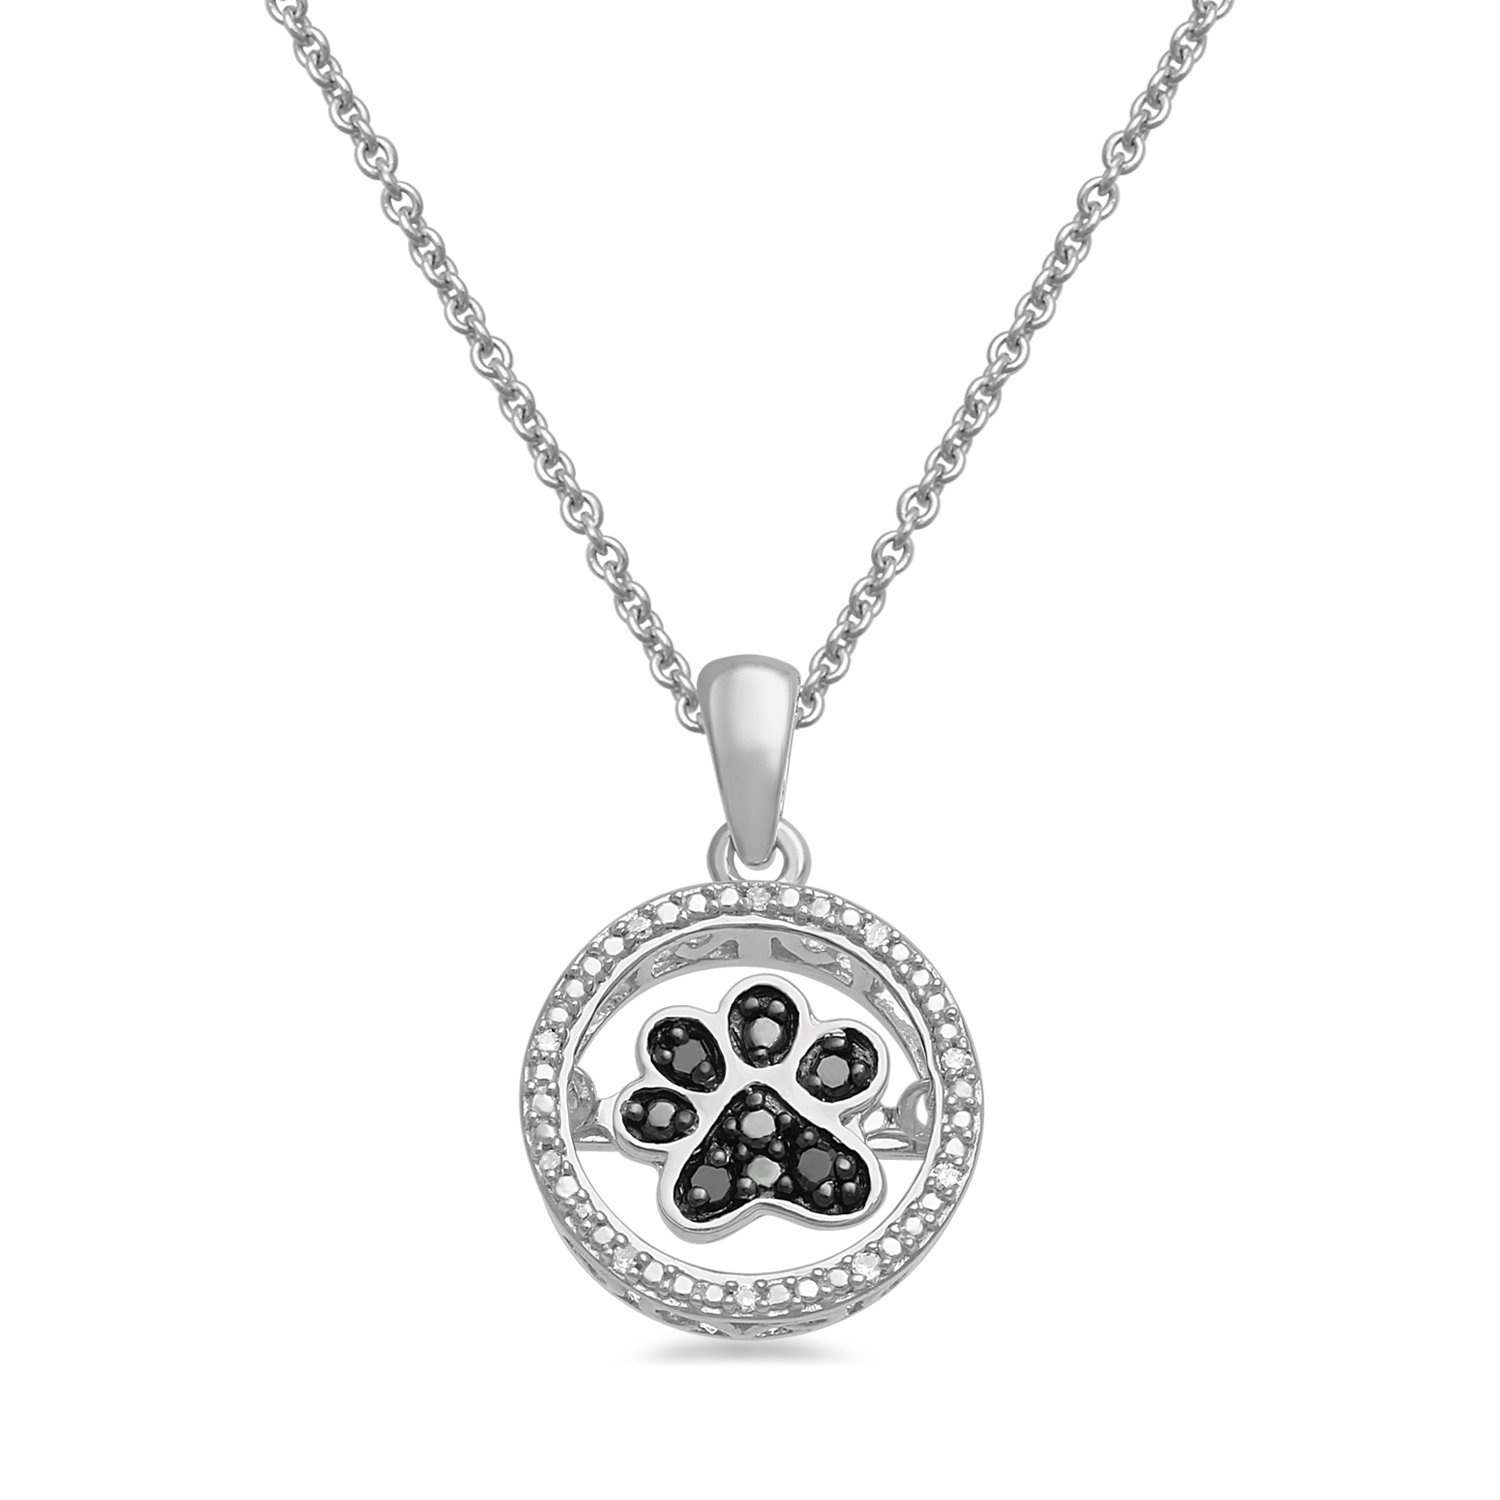 18 Box Chain Jewelili Sterling Silver Black and White Diamond Accented Dancing Dog Paw Circle Pendant Necklace